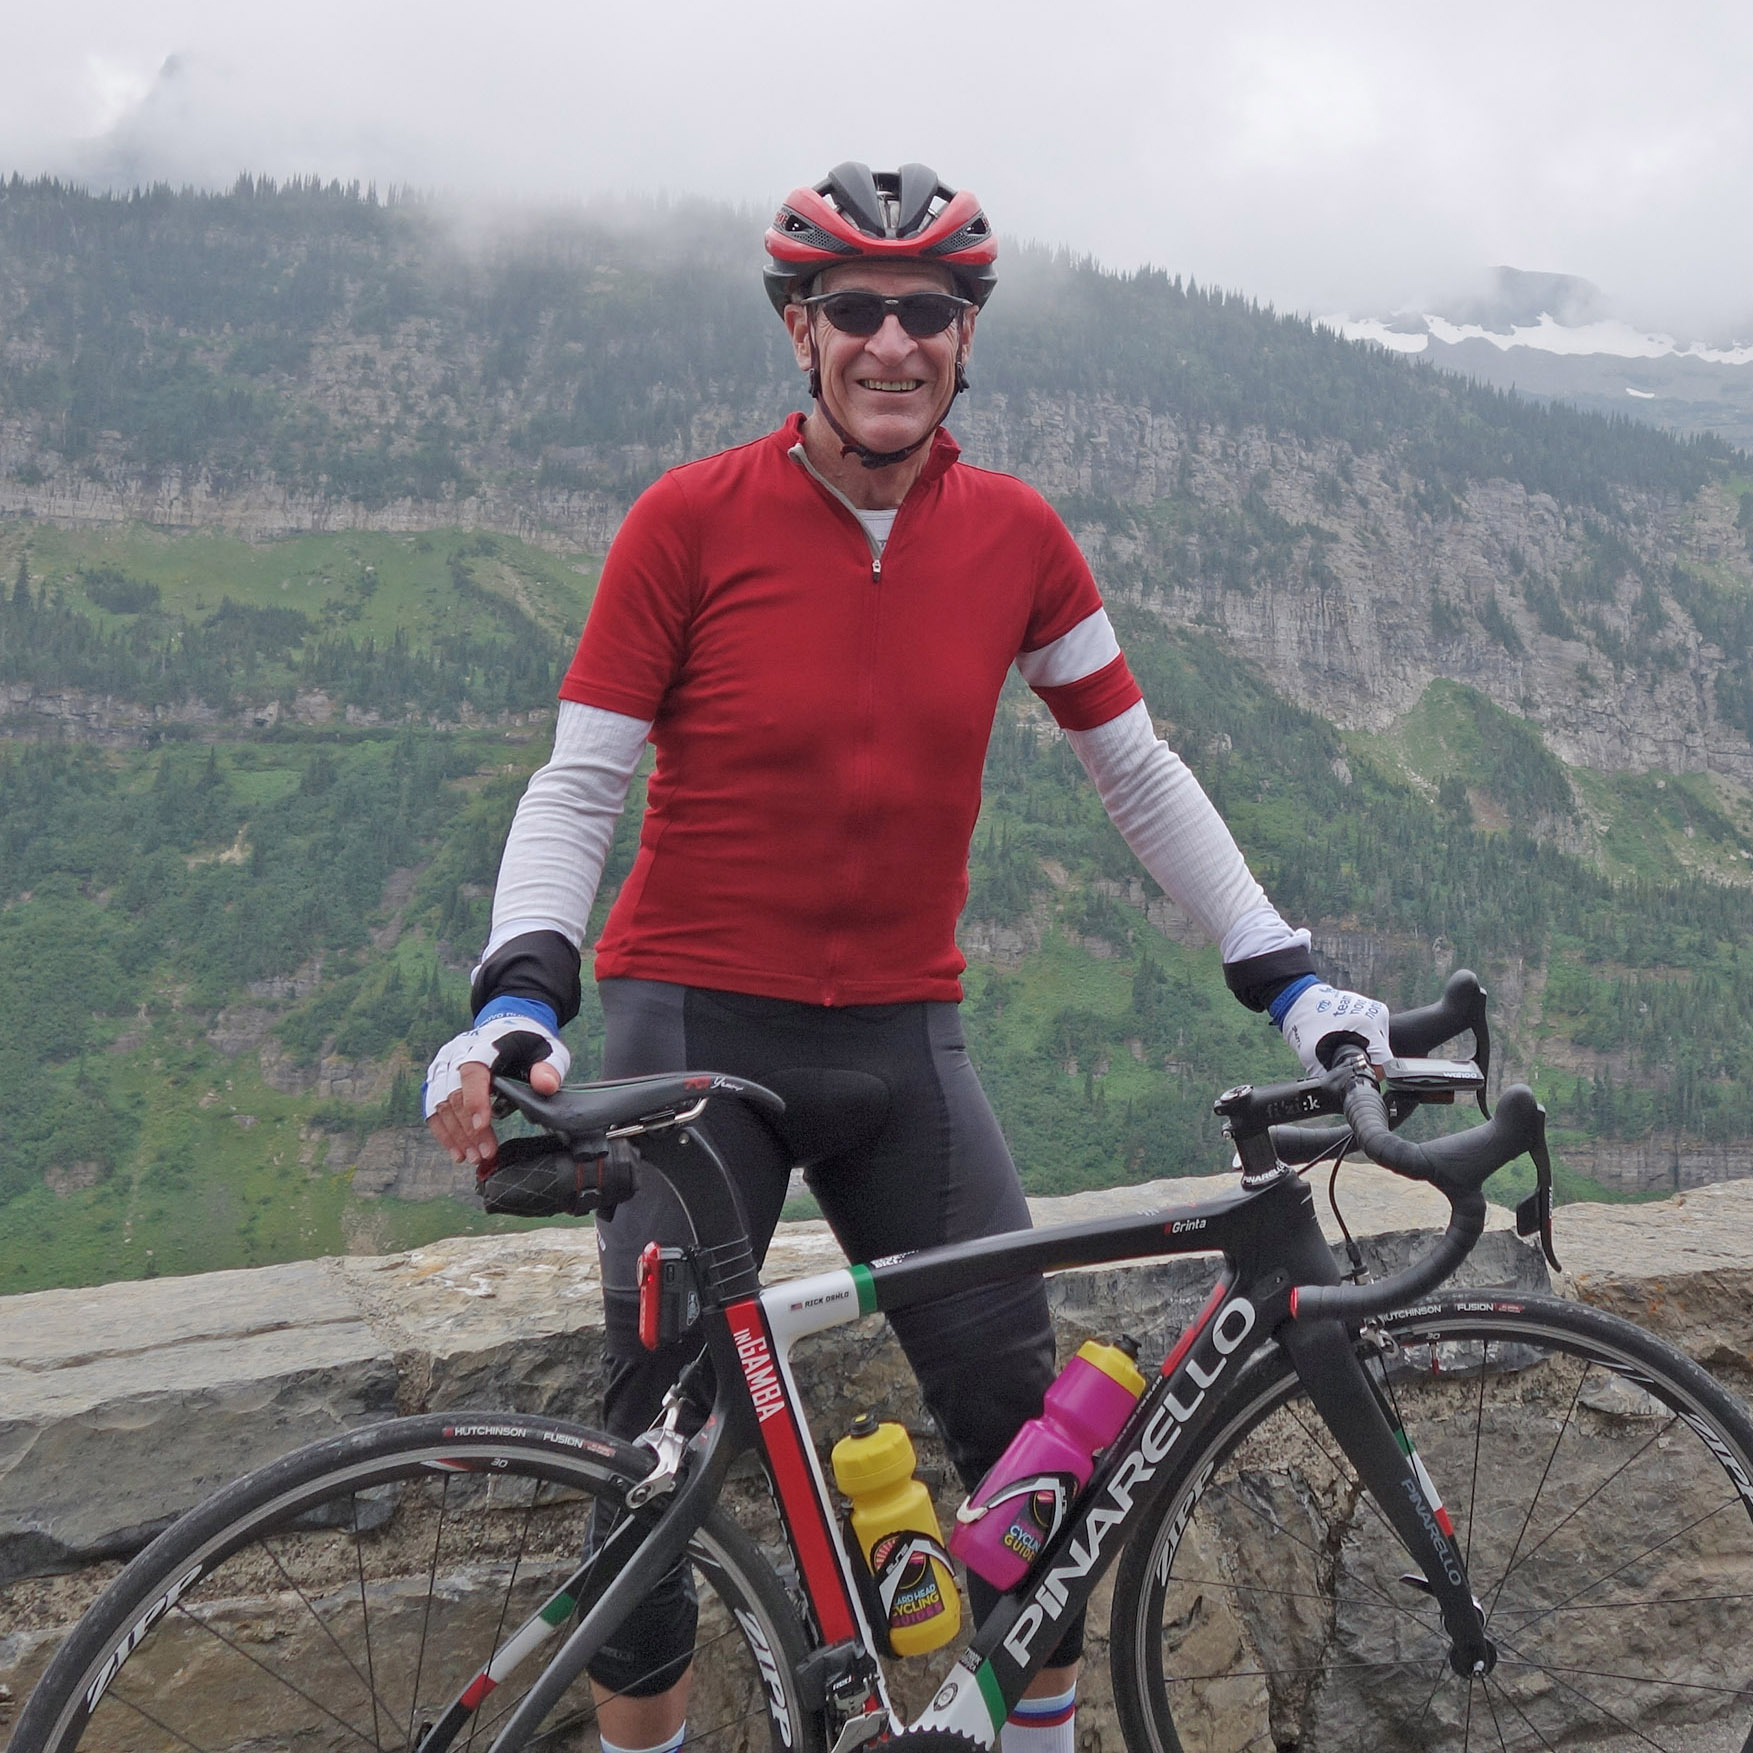 I have 2 FormMounts on my road bikes for use with both the large Garmin 1000 and Wahoo Elemnt. The mounts are rock solid over the most rugged of terrains. I love the adjustability, clean unobstrusive look, and most of all not having anything clamped to my bars. - -Rick OshloBreckenridge, Colorado